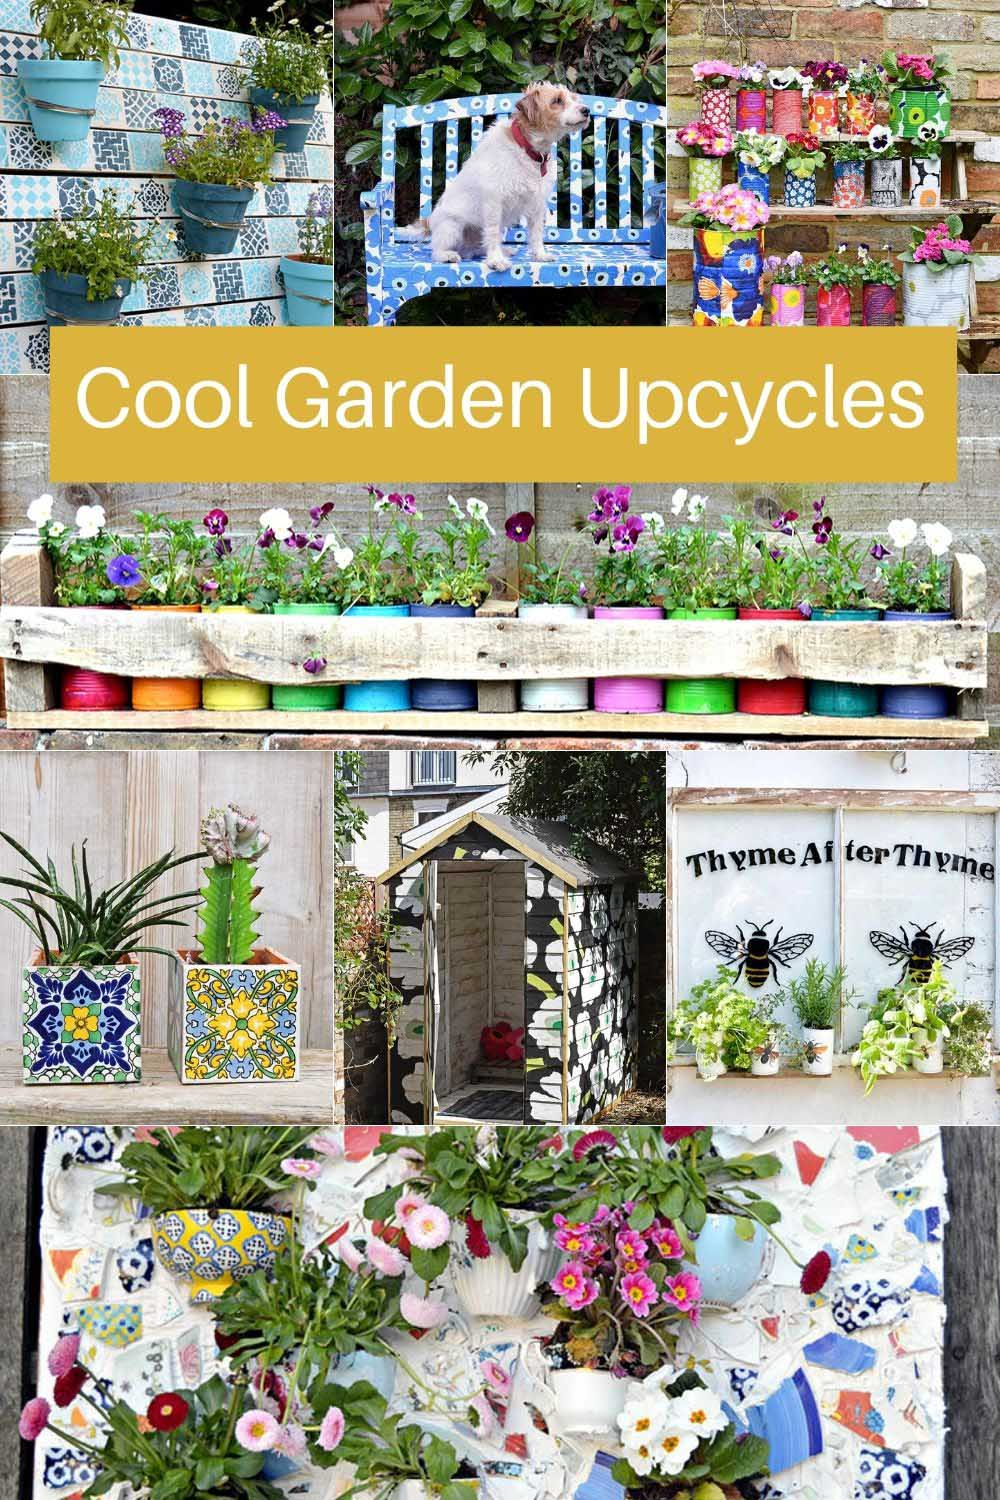 Cool garden upcycles